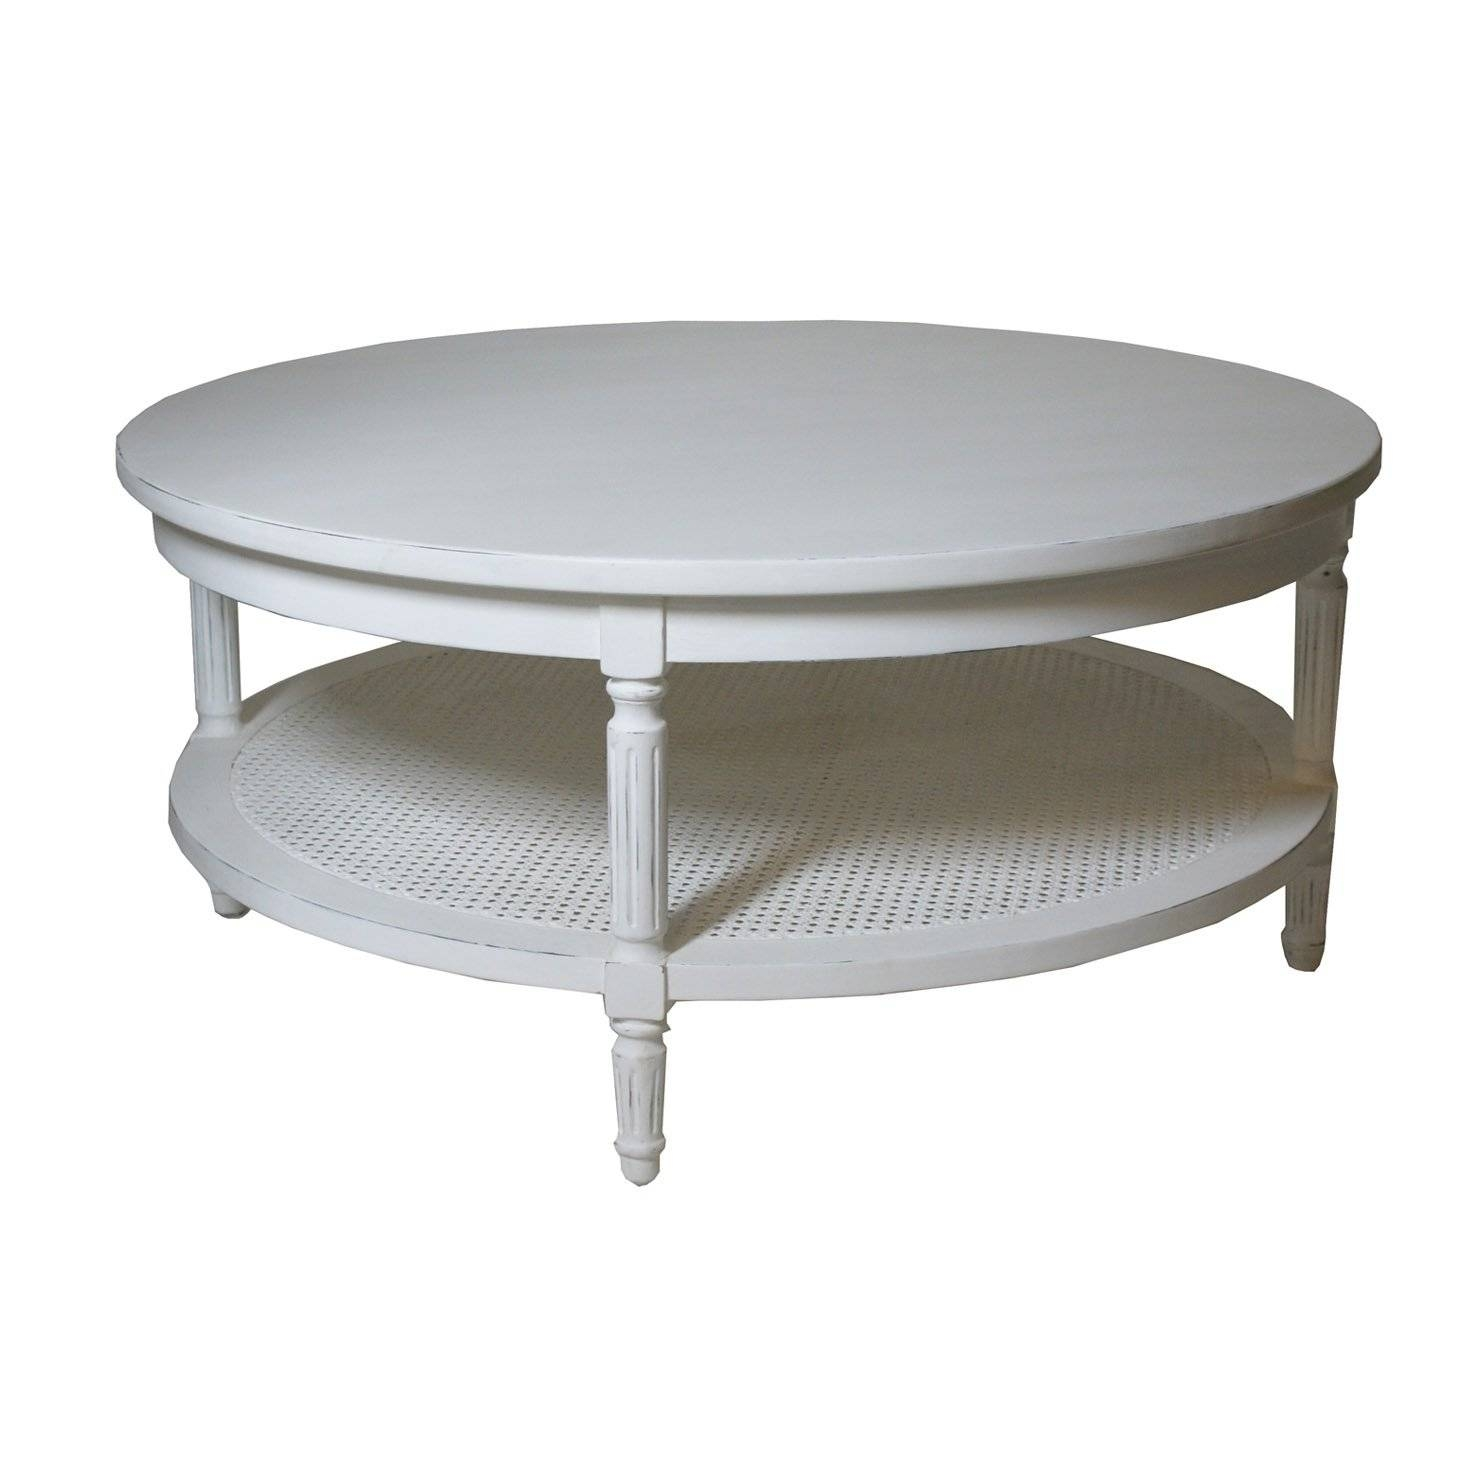 Astonishing White Coffee Table Living Room Decor Ideas – White intended for Oval Gloss Coffee Tables (Image 2 of 30)